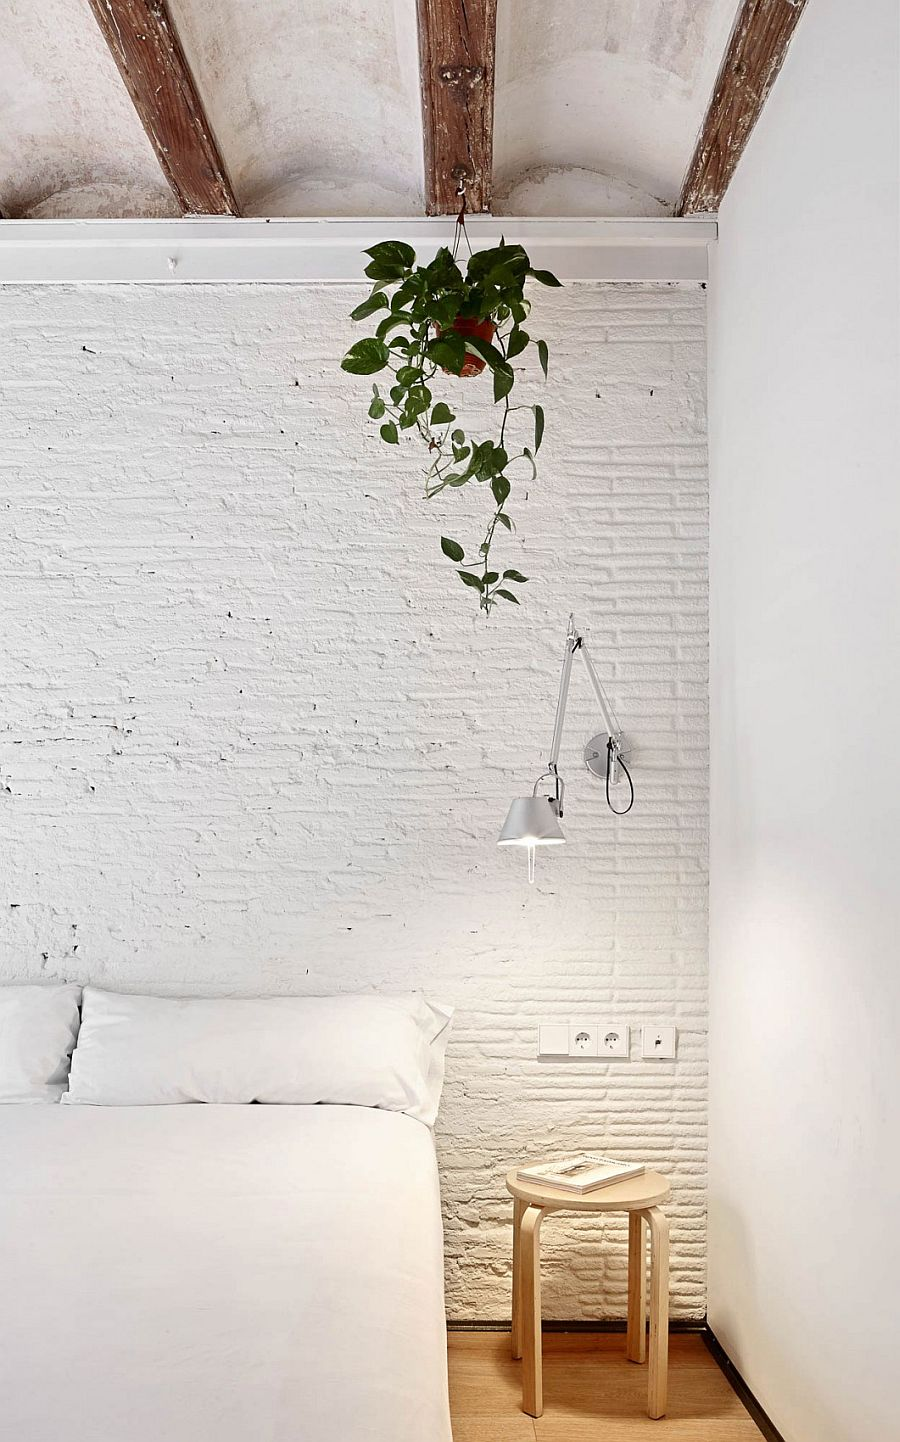 Exquisite-tiny-bedroom-with-whitewashed-brick-wall-backdrop